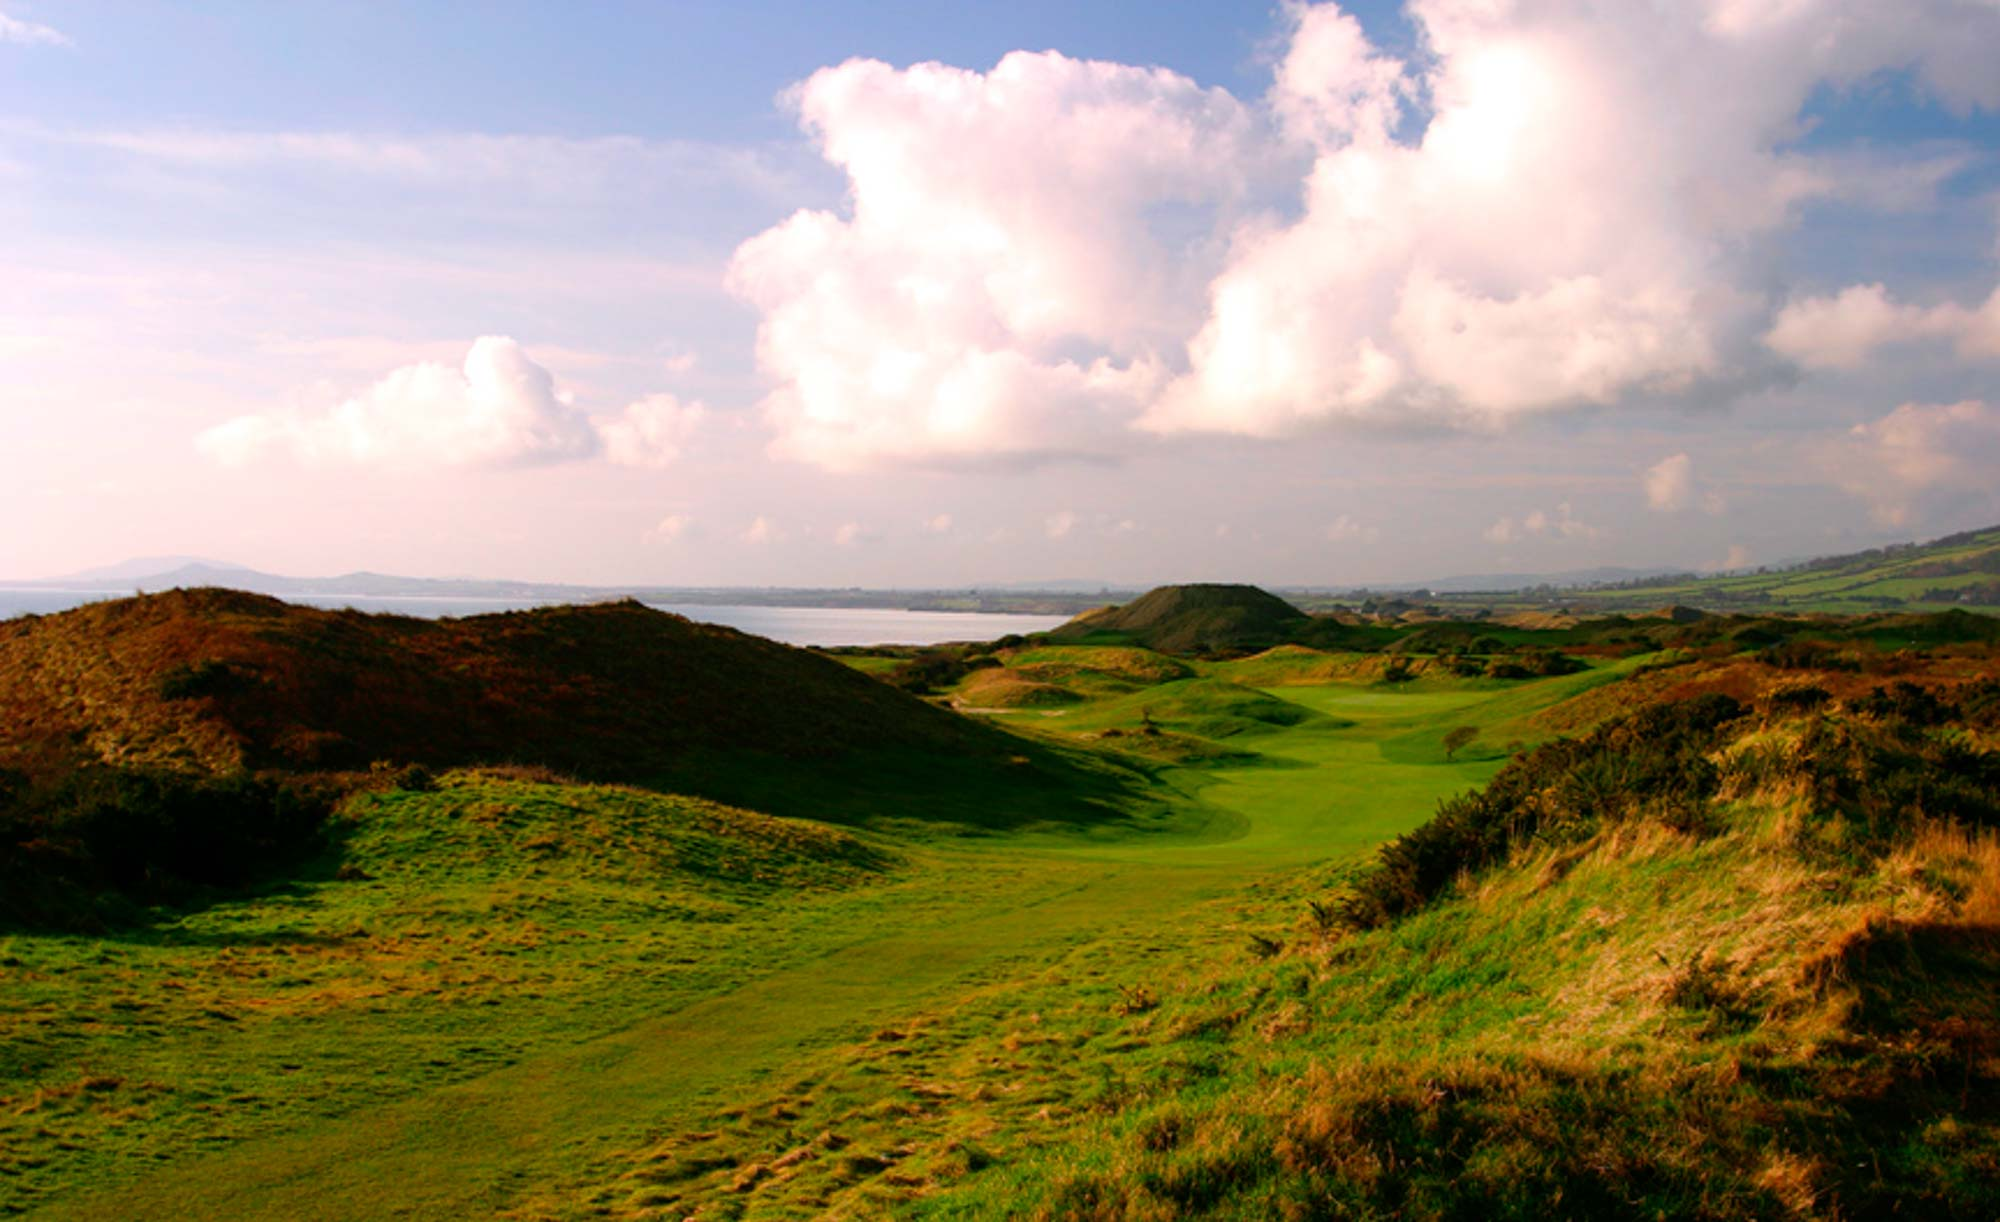 The 17th hole at The European Club in Ireland.